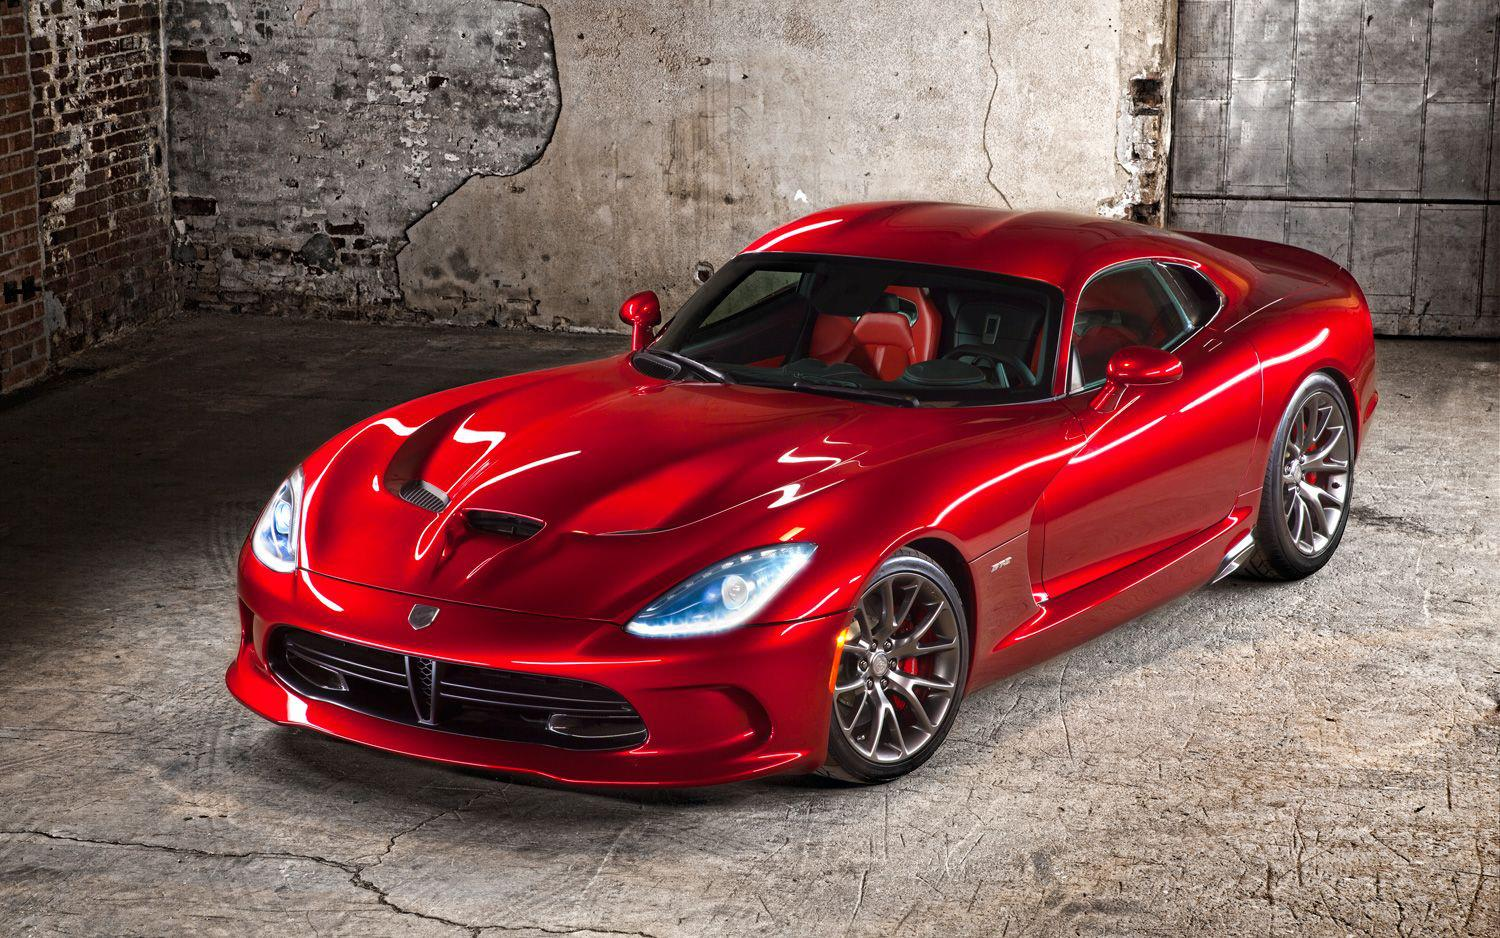 Chrysler viper vs dodge viper